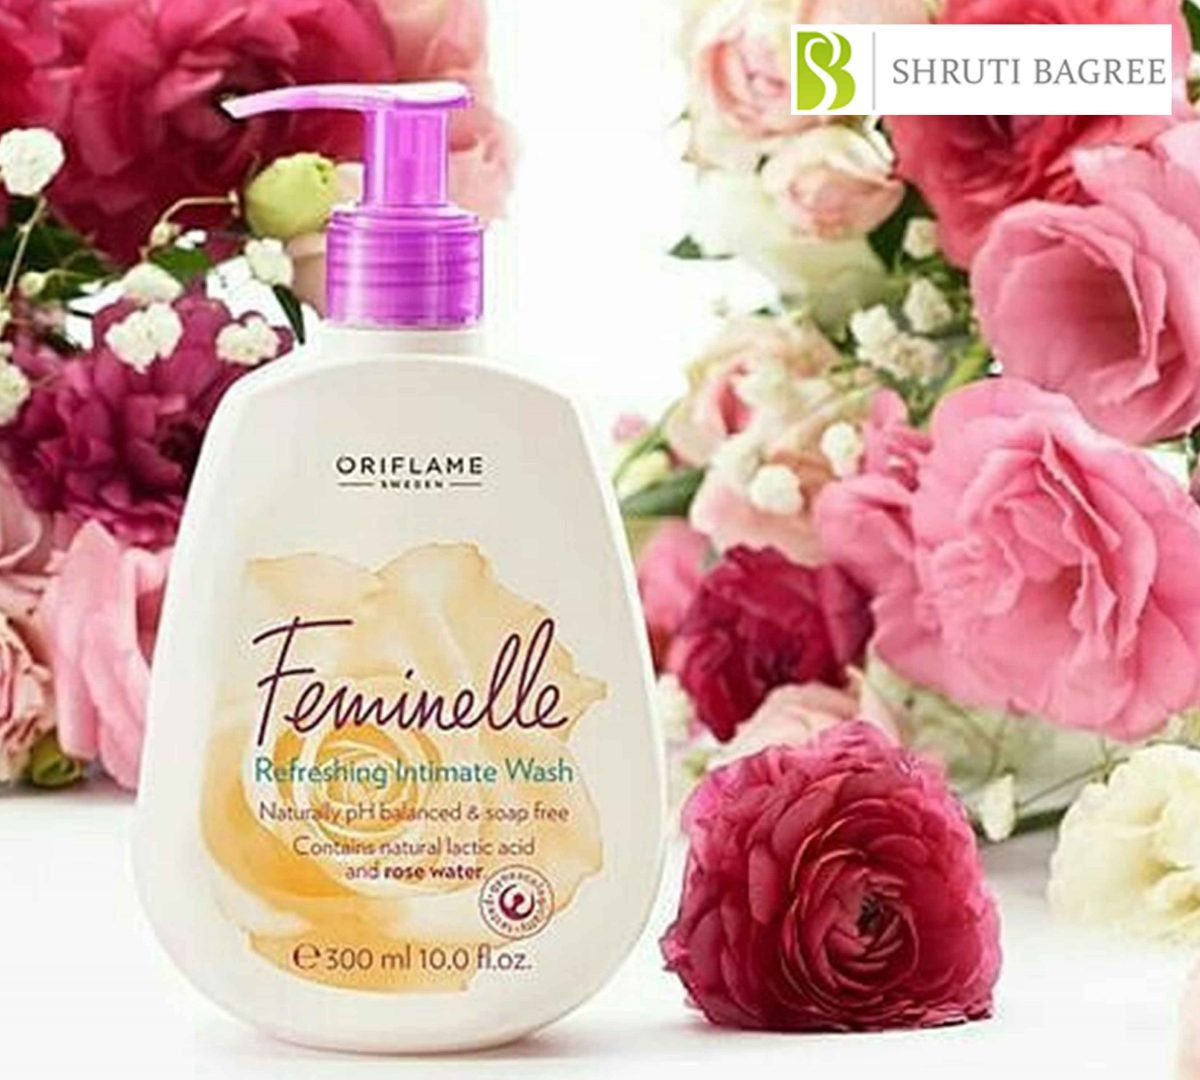 The Perfect pH Balance To Maintain For Your Intimate Area with Feminelle